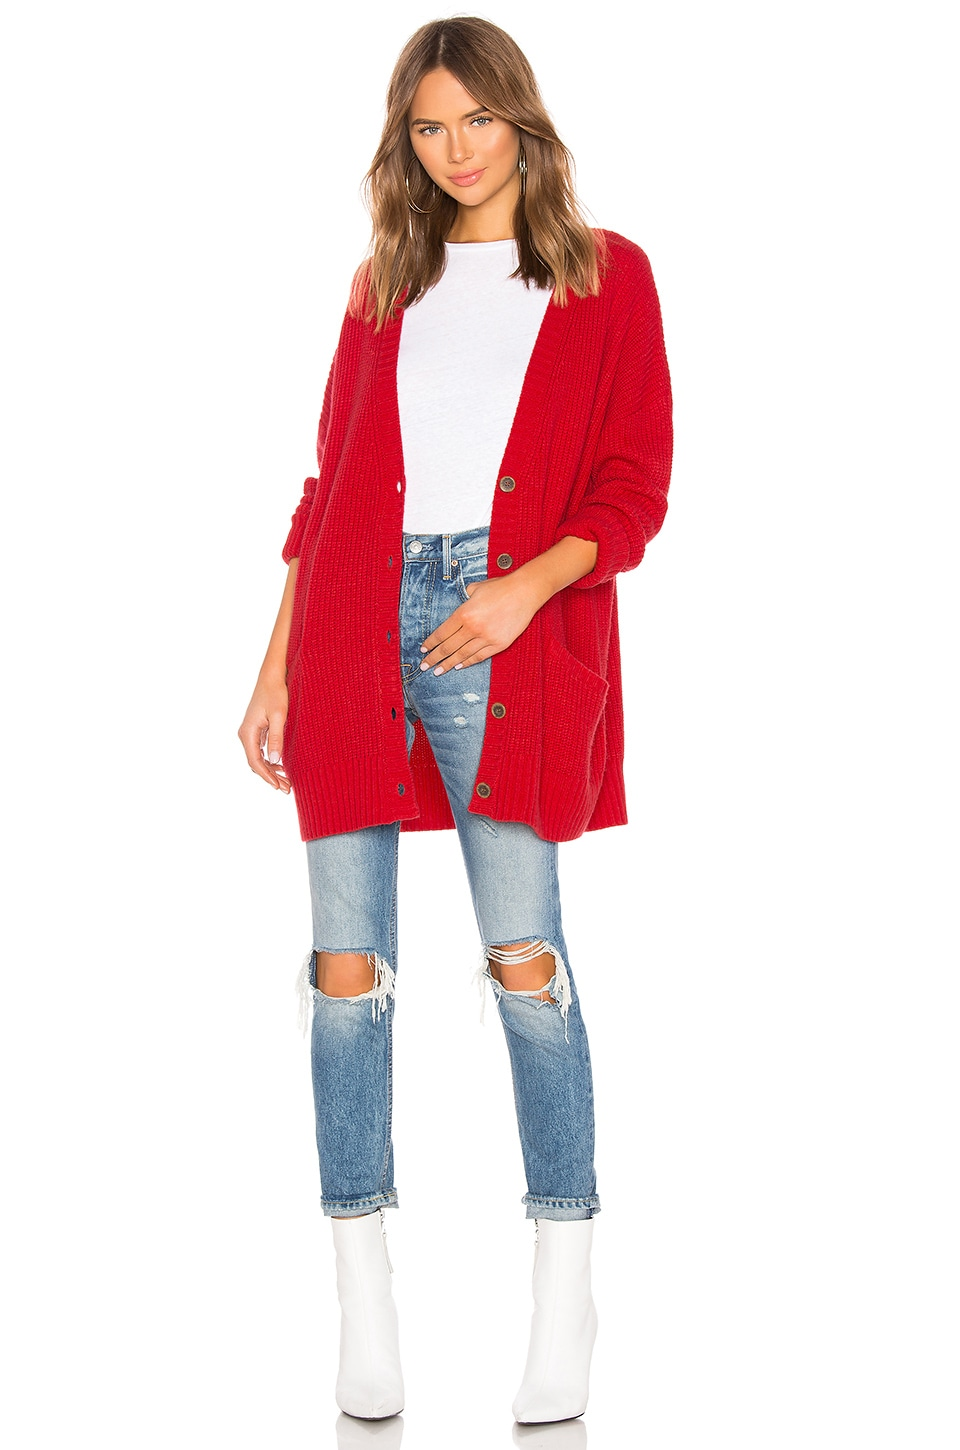 Sanctuary Keep It Cozy Cardigan in Poppy Red